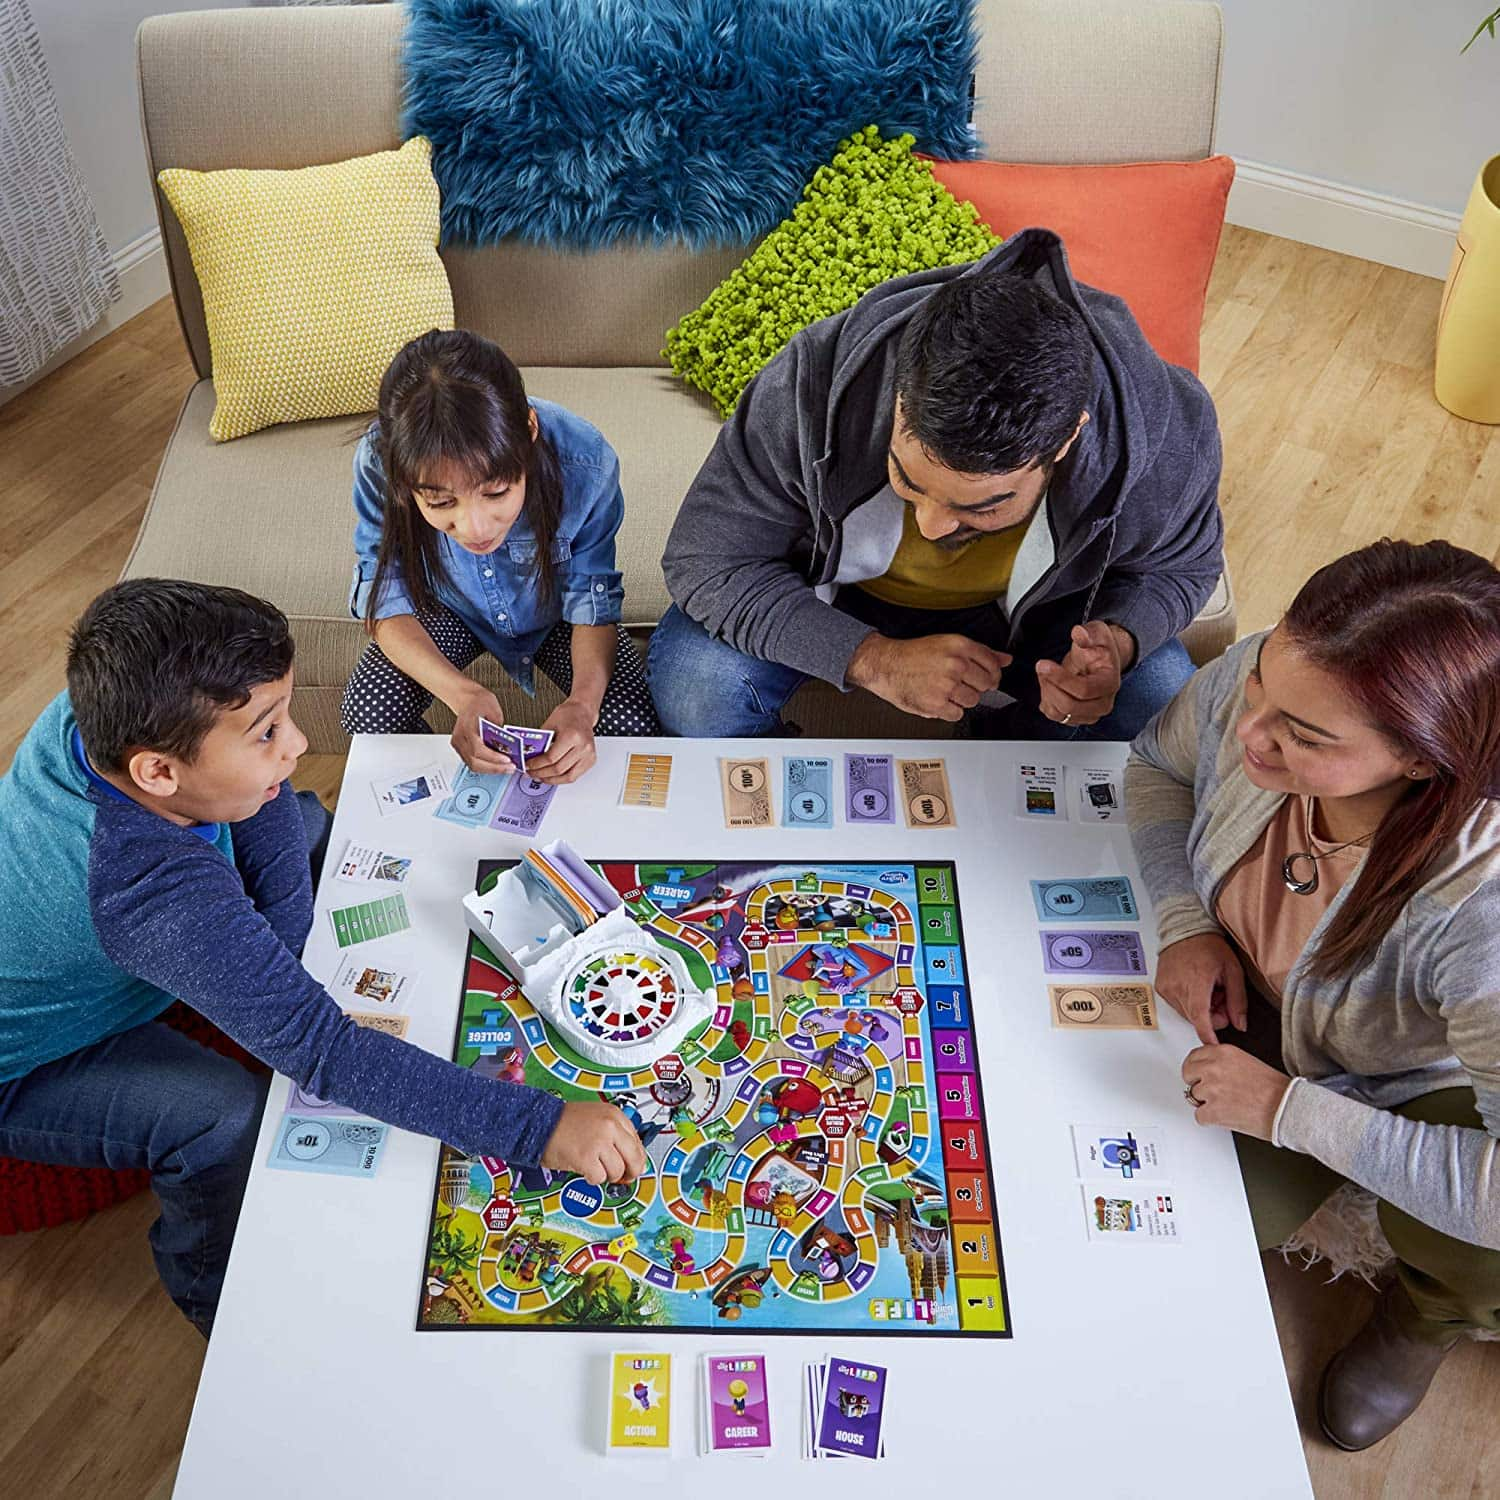 Game of Life 2021 'Your Life Your Way' Total Product Offering with game board, money, cards, and spinner, in a lifestyle photoshoot with family. Made by Hasbro Gaming